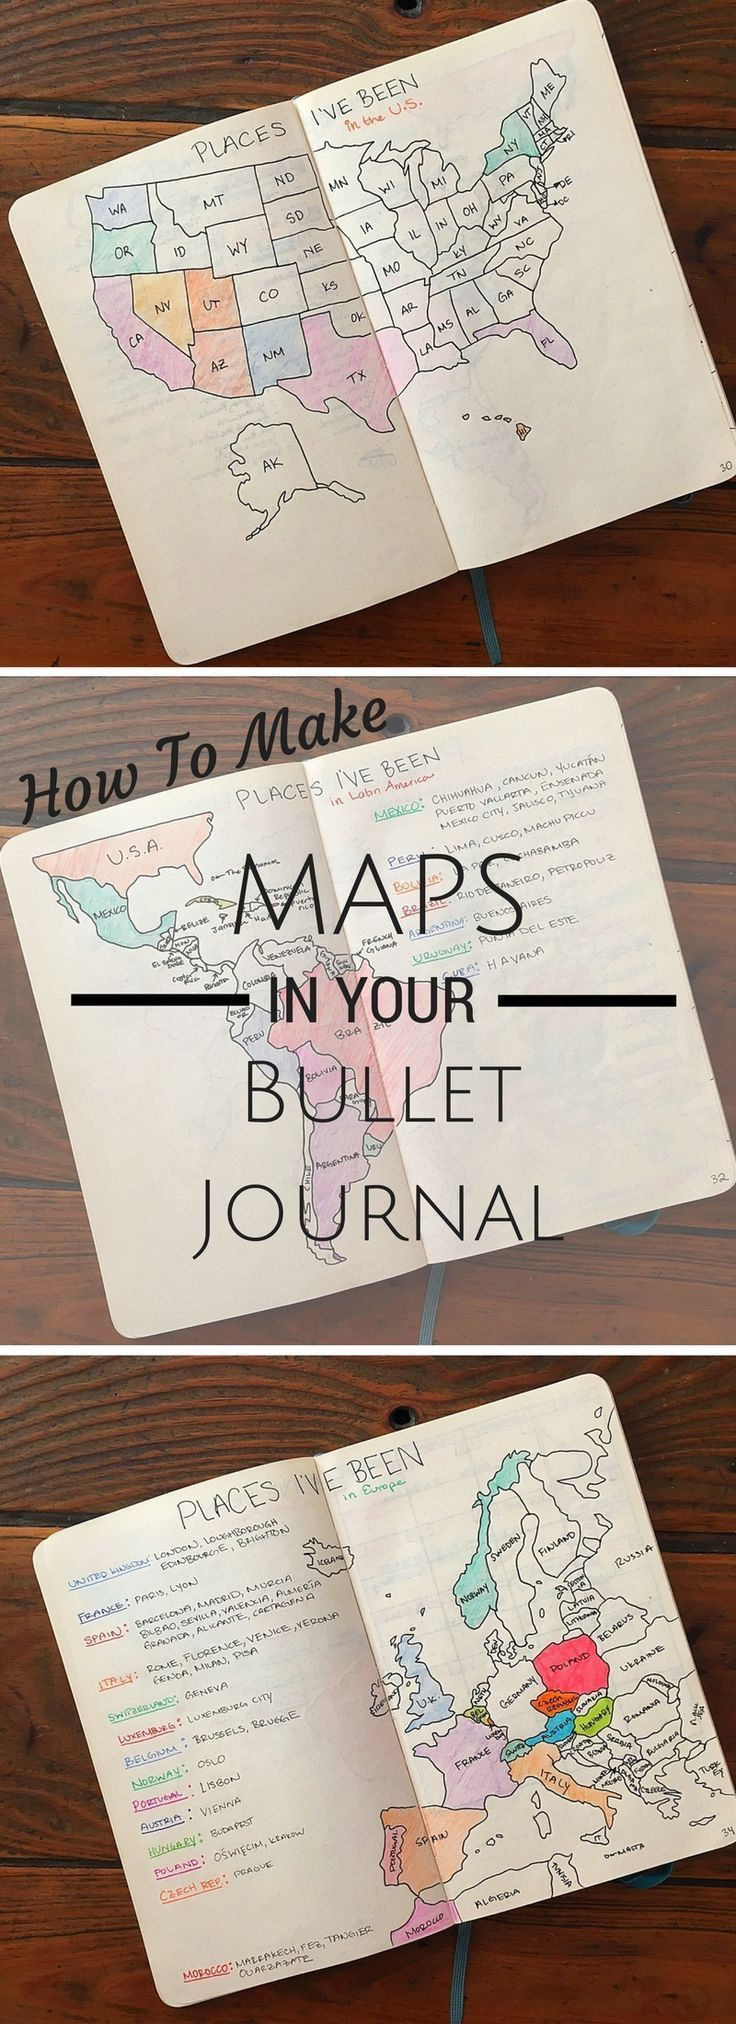 Arte France Journal How To Make Maps In Your Bullet Journal Notes Revistas De Arte